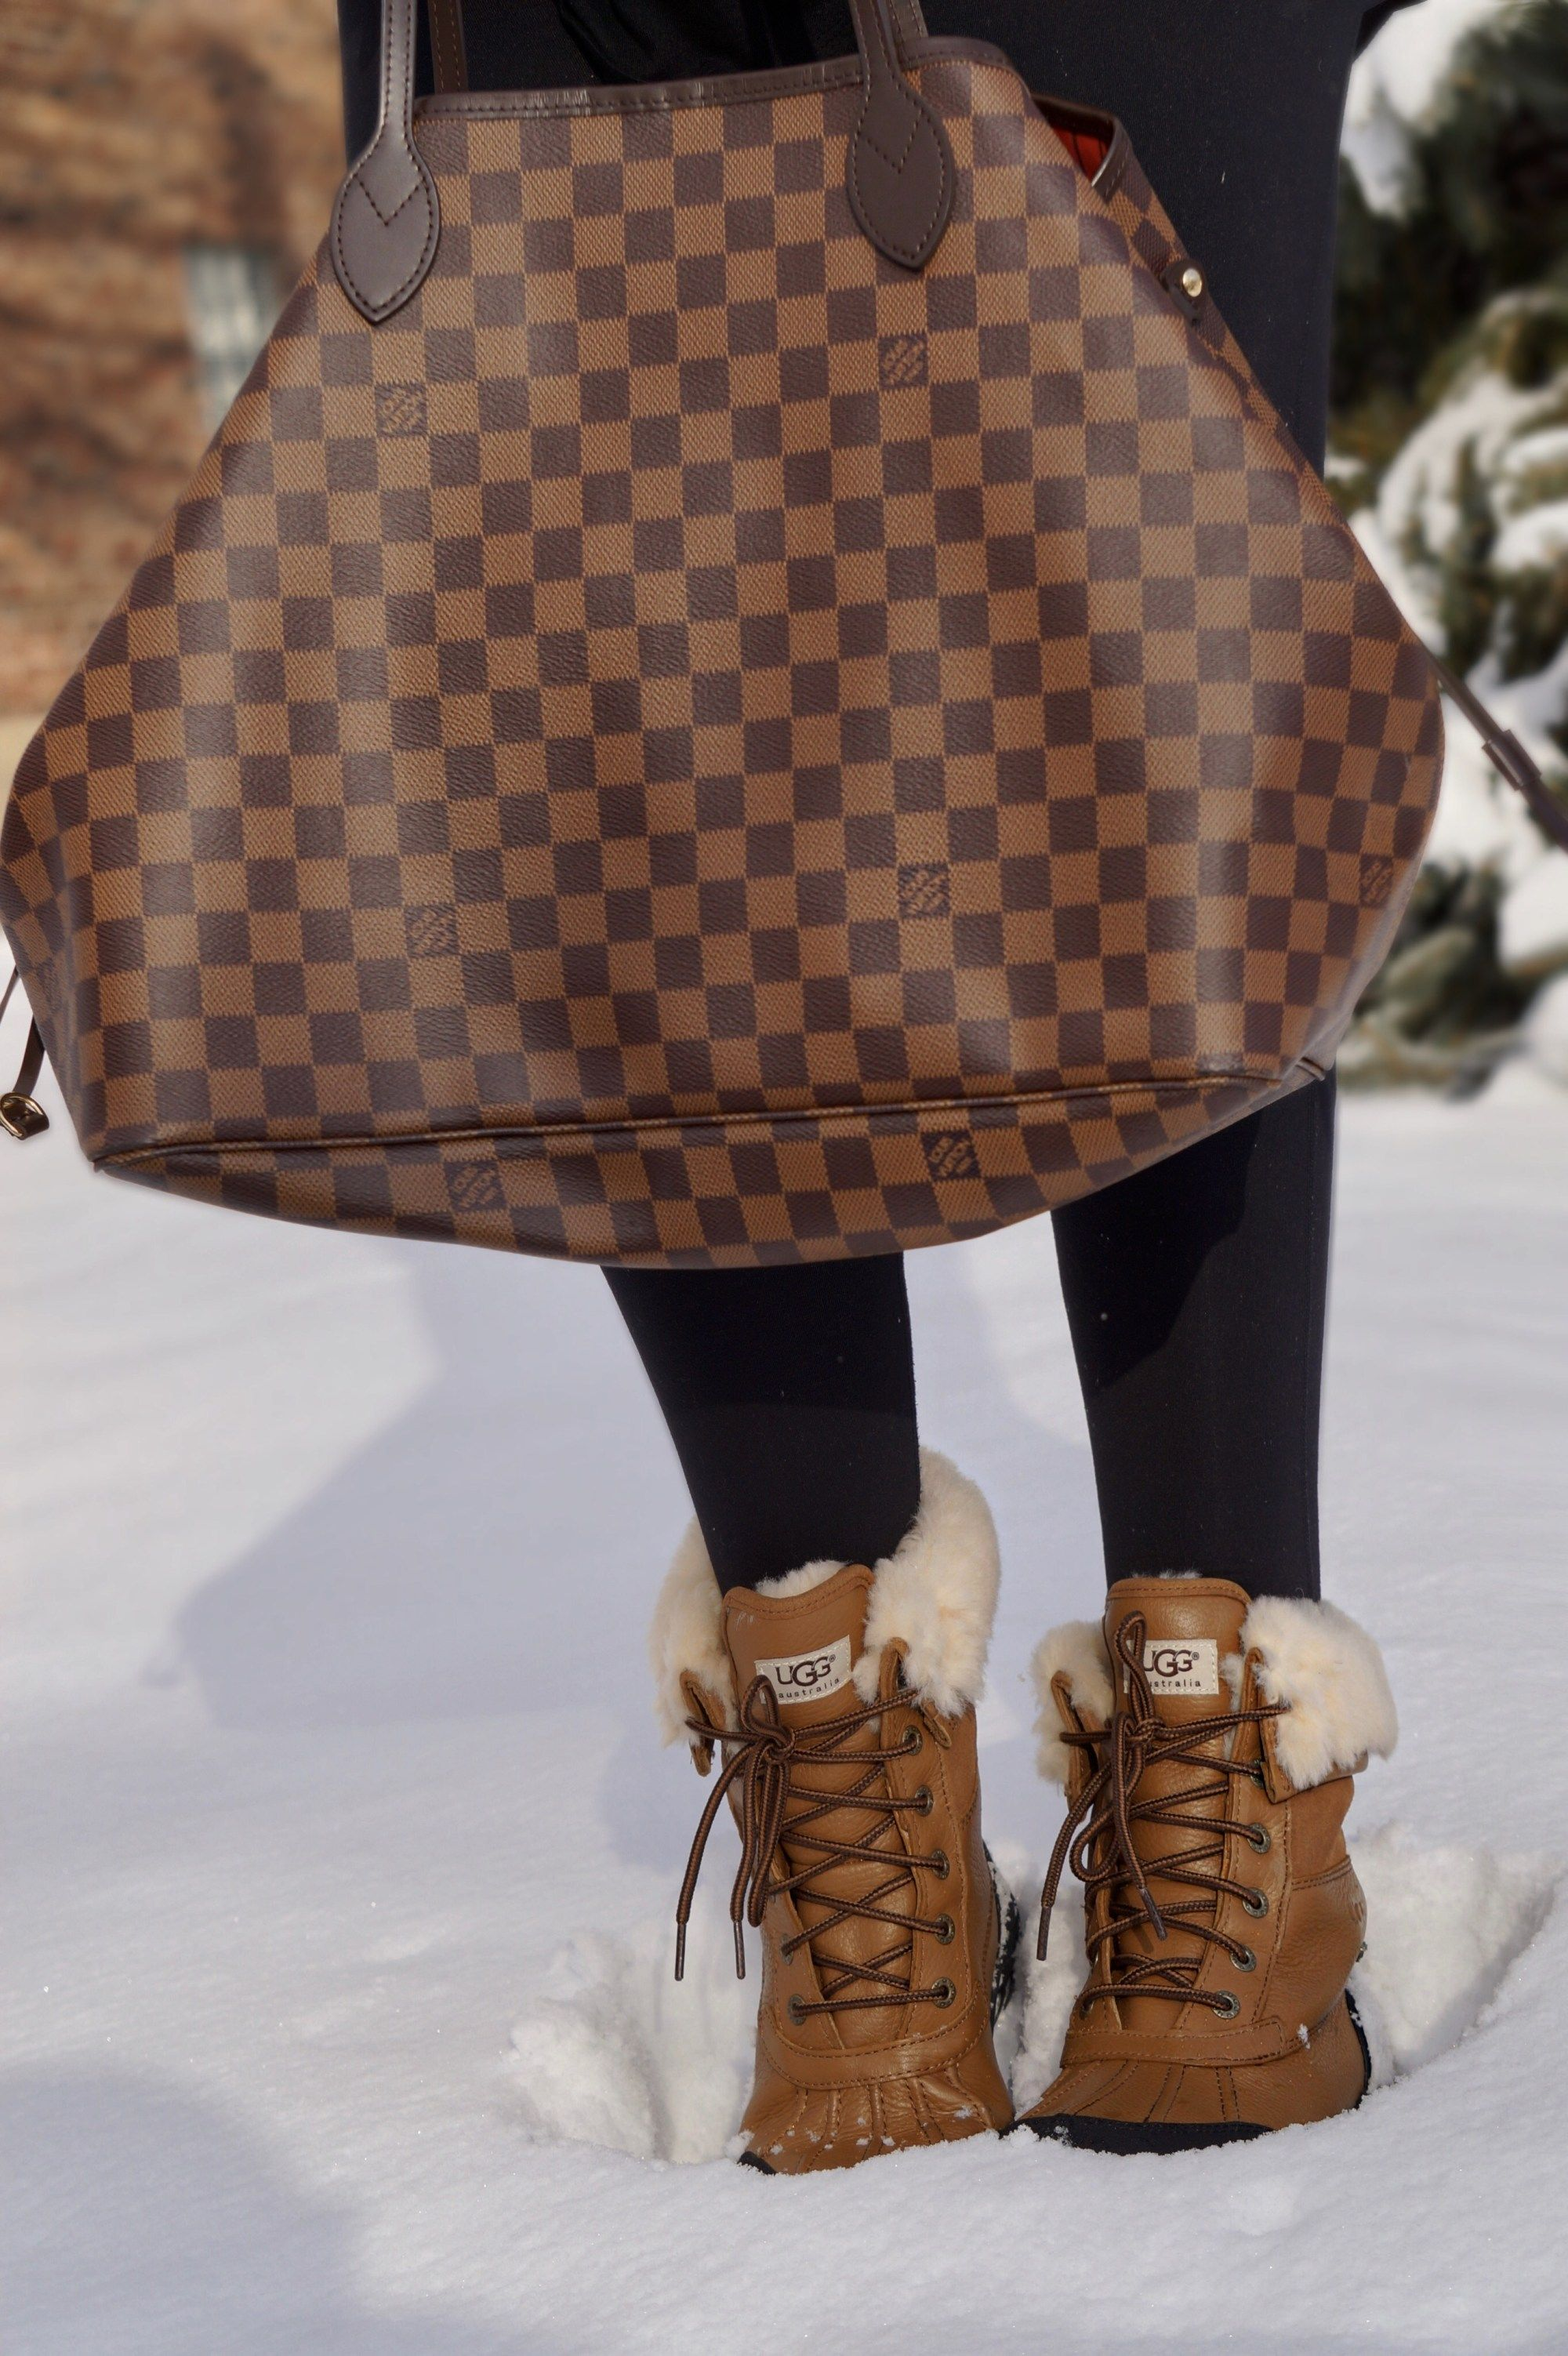 441922e8580 Louis Vuitton and Ugg boots perfect for winter! Links in blog ...